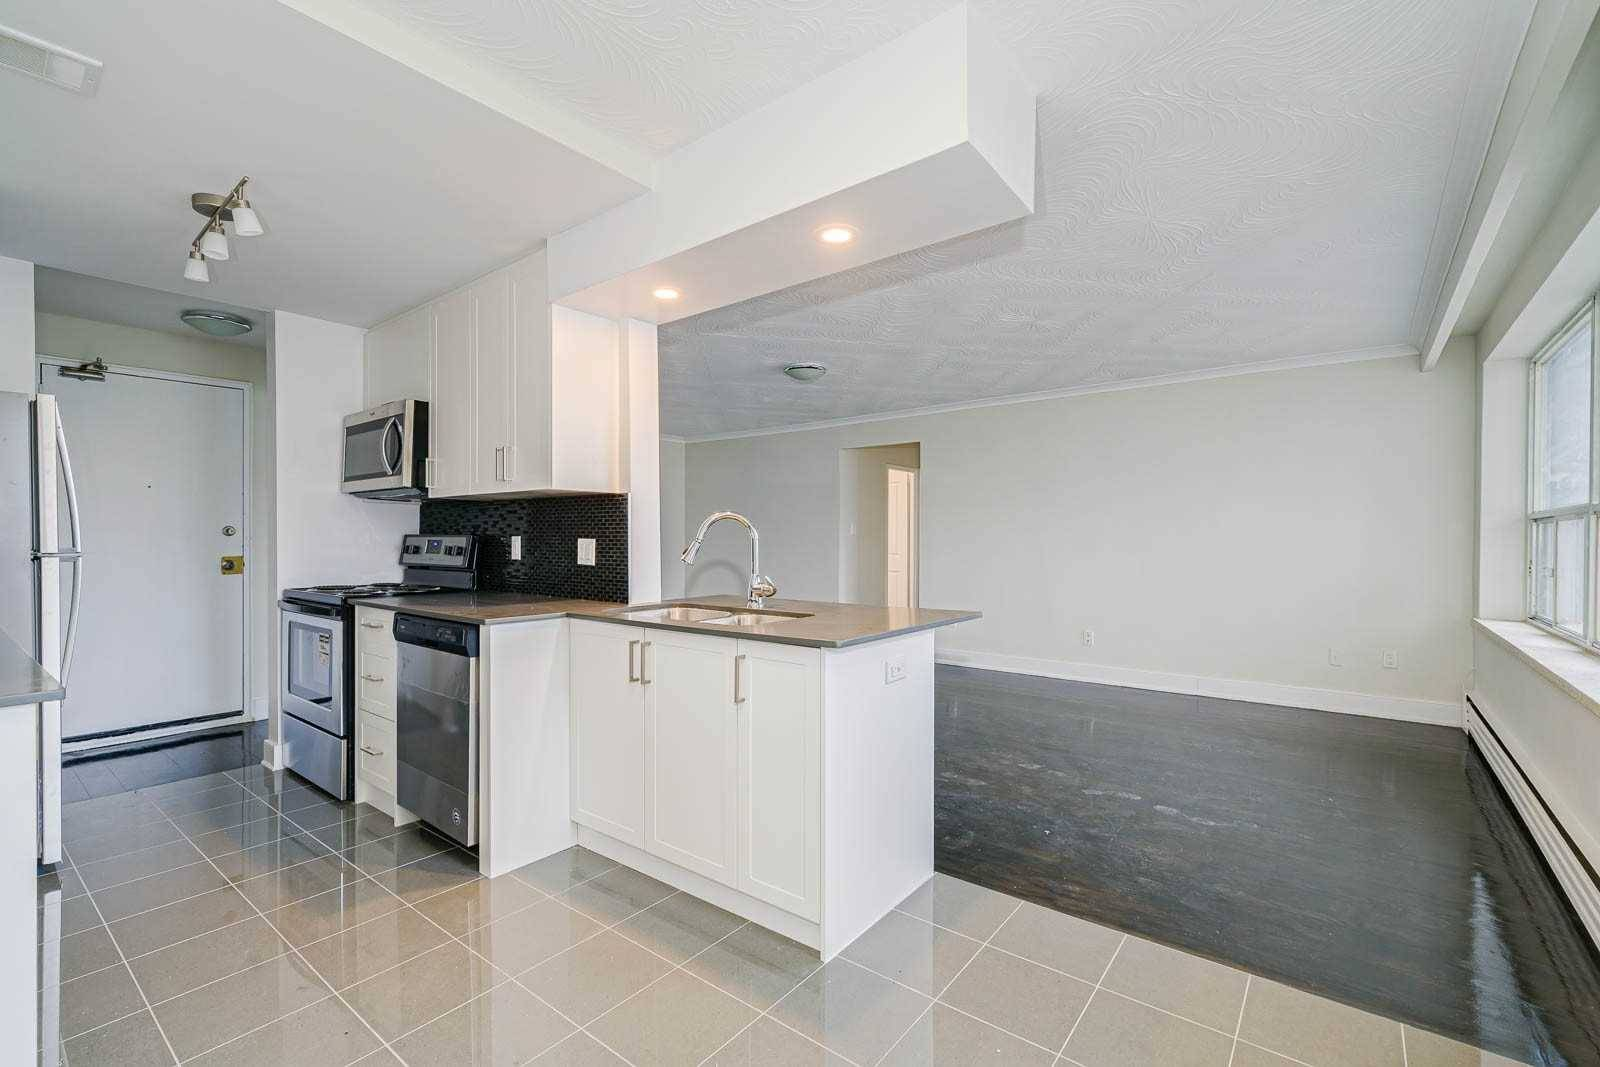 Buliding: 4 Superior Avenue, Toronto, ON